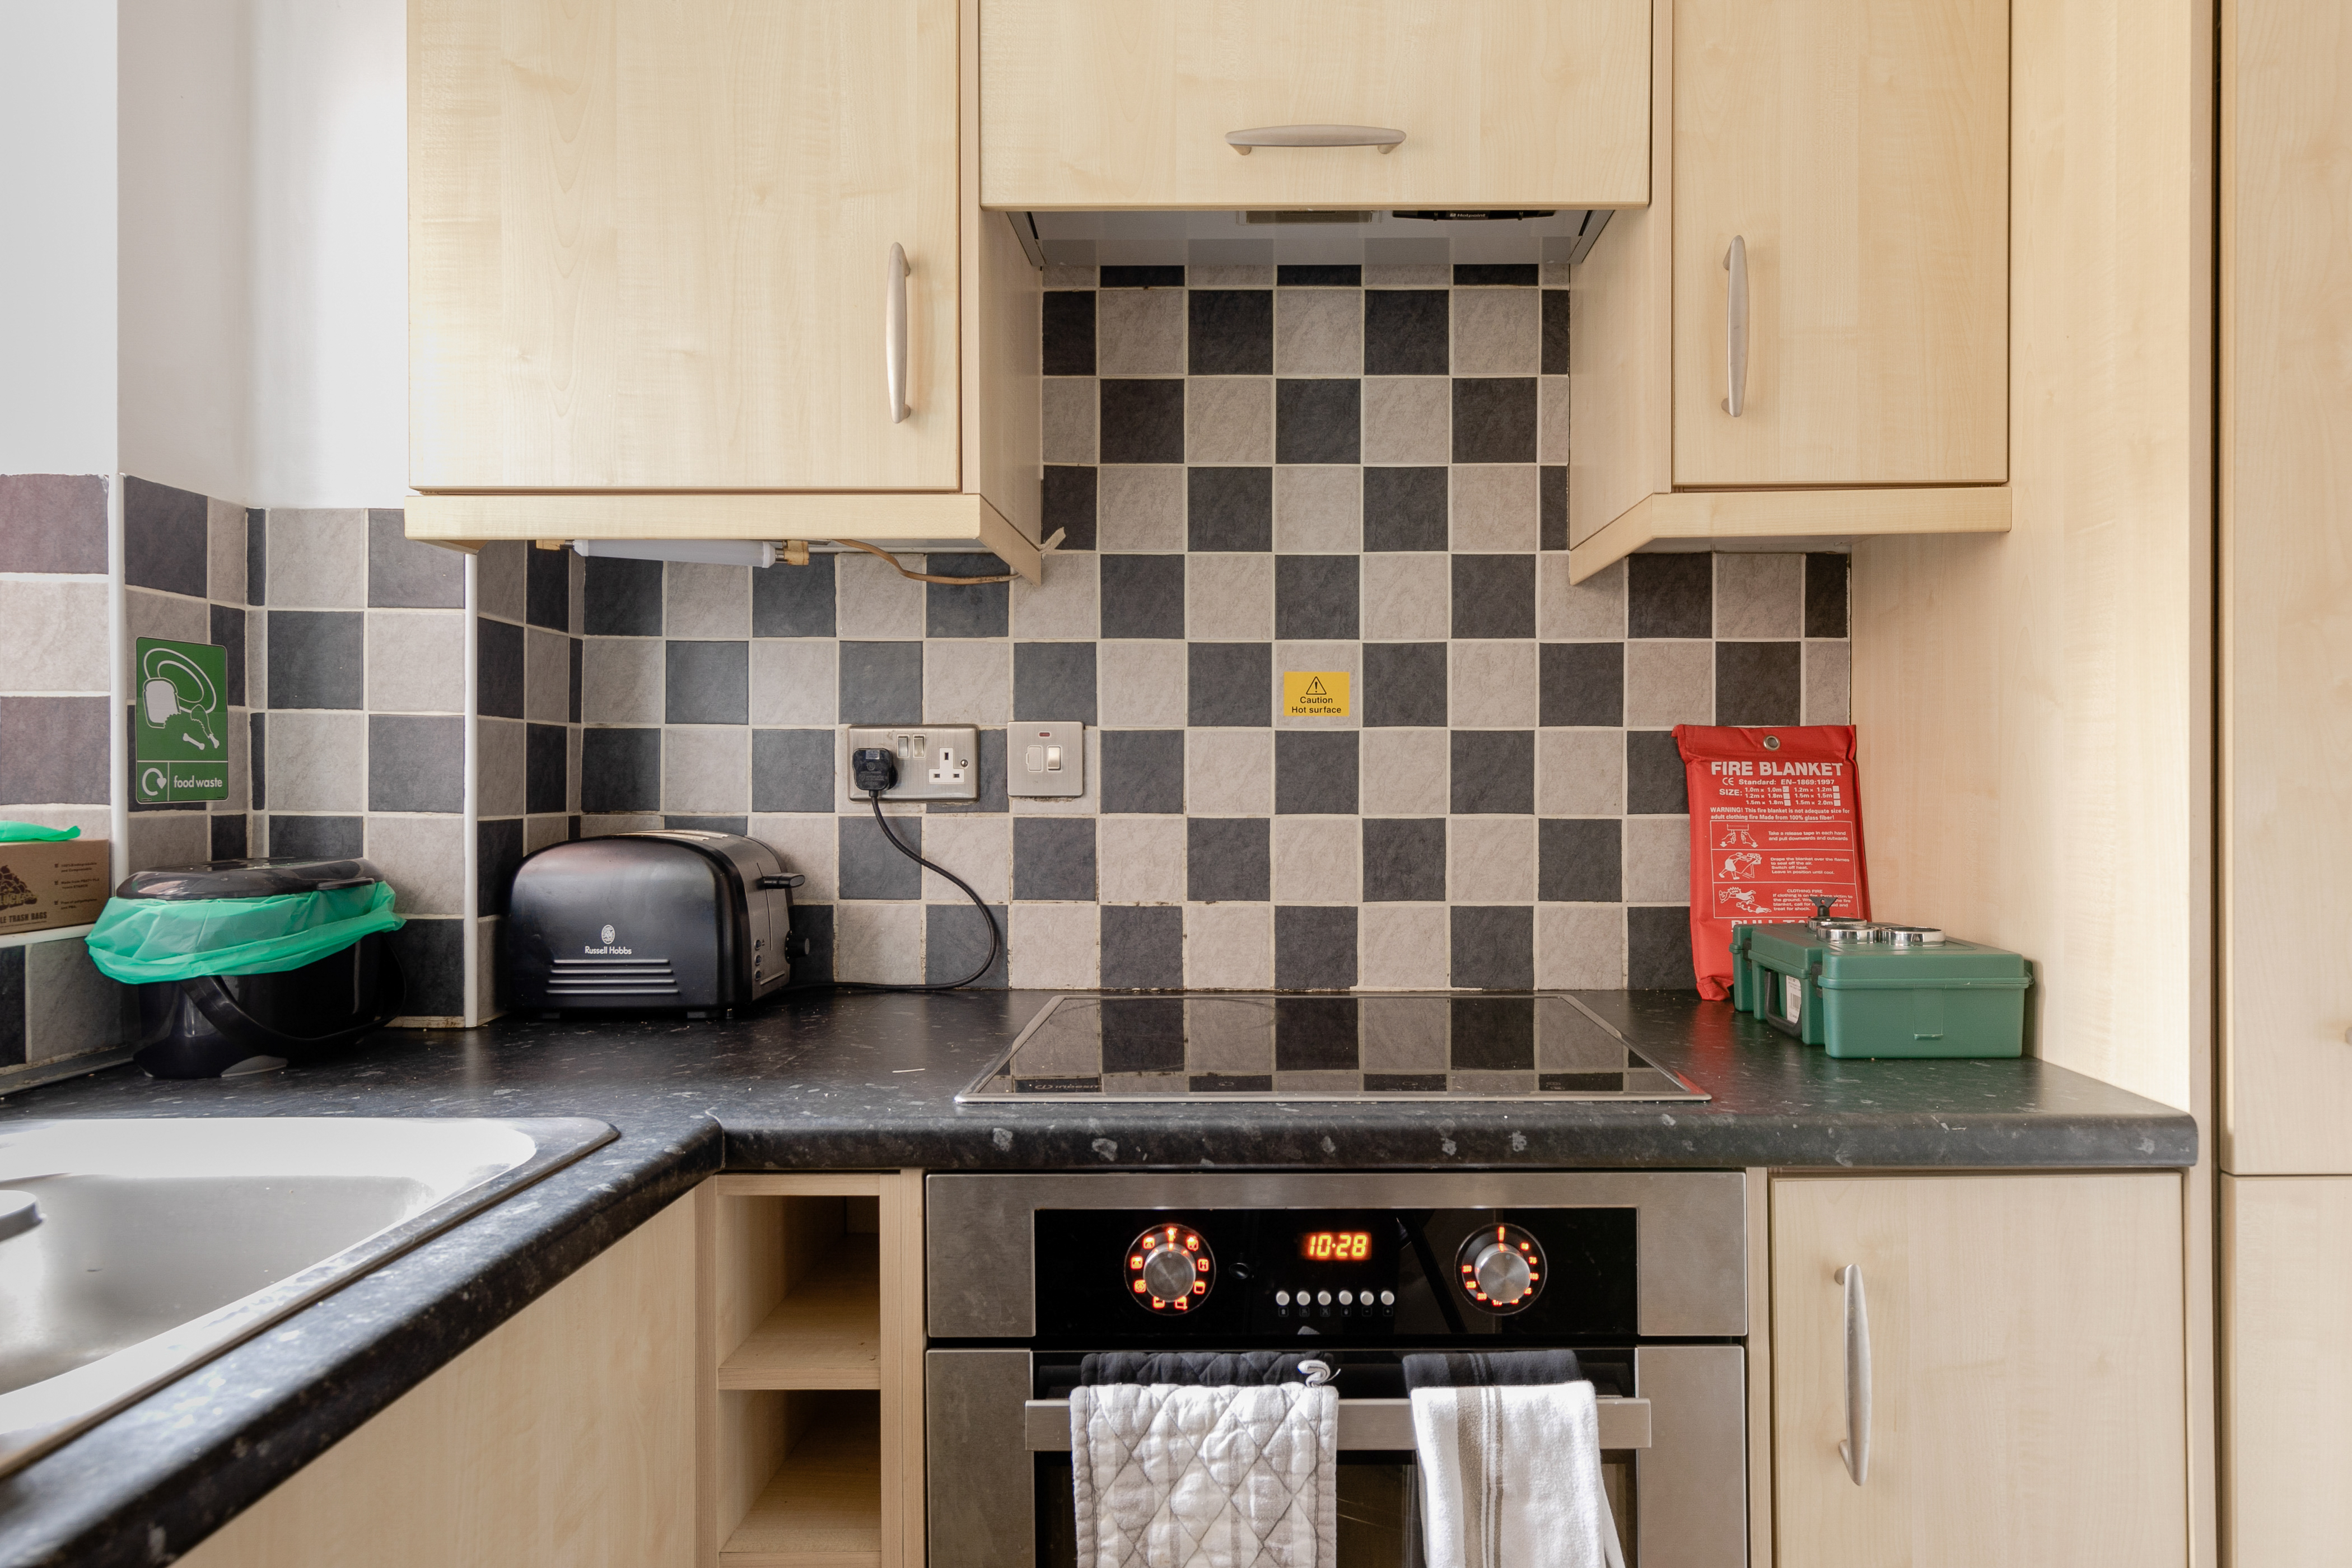 One Bedroom Flat In Lovely St Johns Woking Apartments For Rent In Surrey England United Kingdom